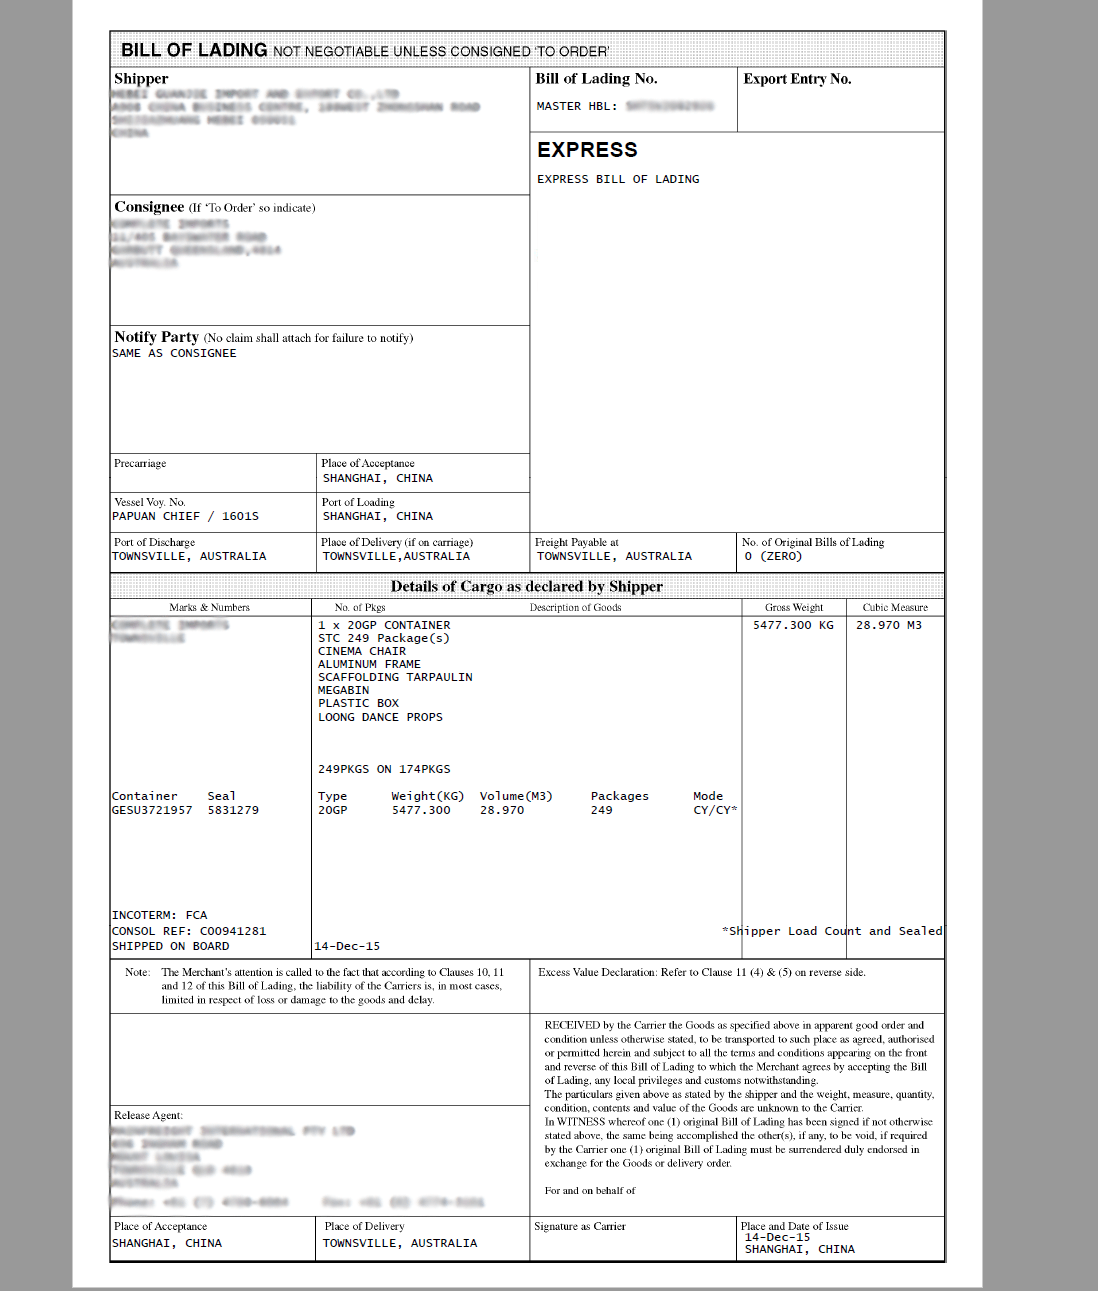 example of bill of lading document used for import export